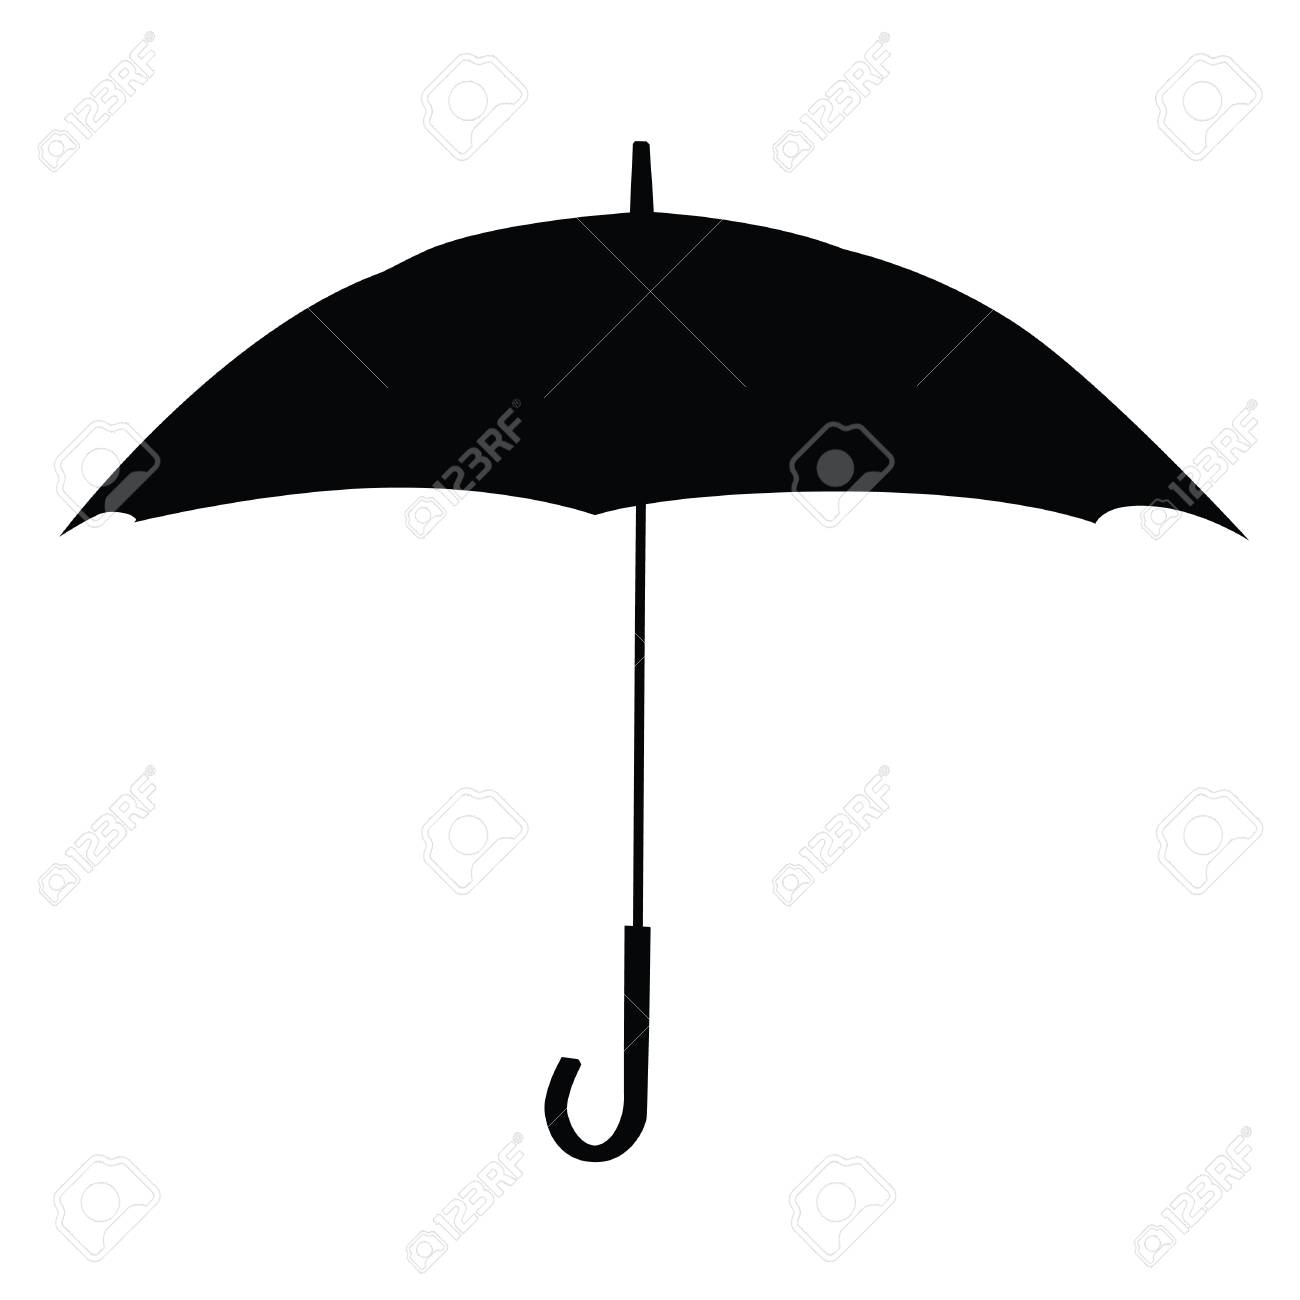 A black and white silhouette of an umbrella stock vector 84732025